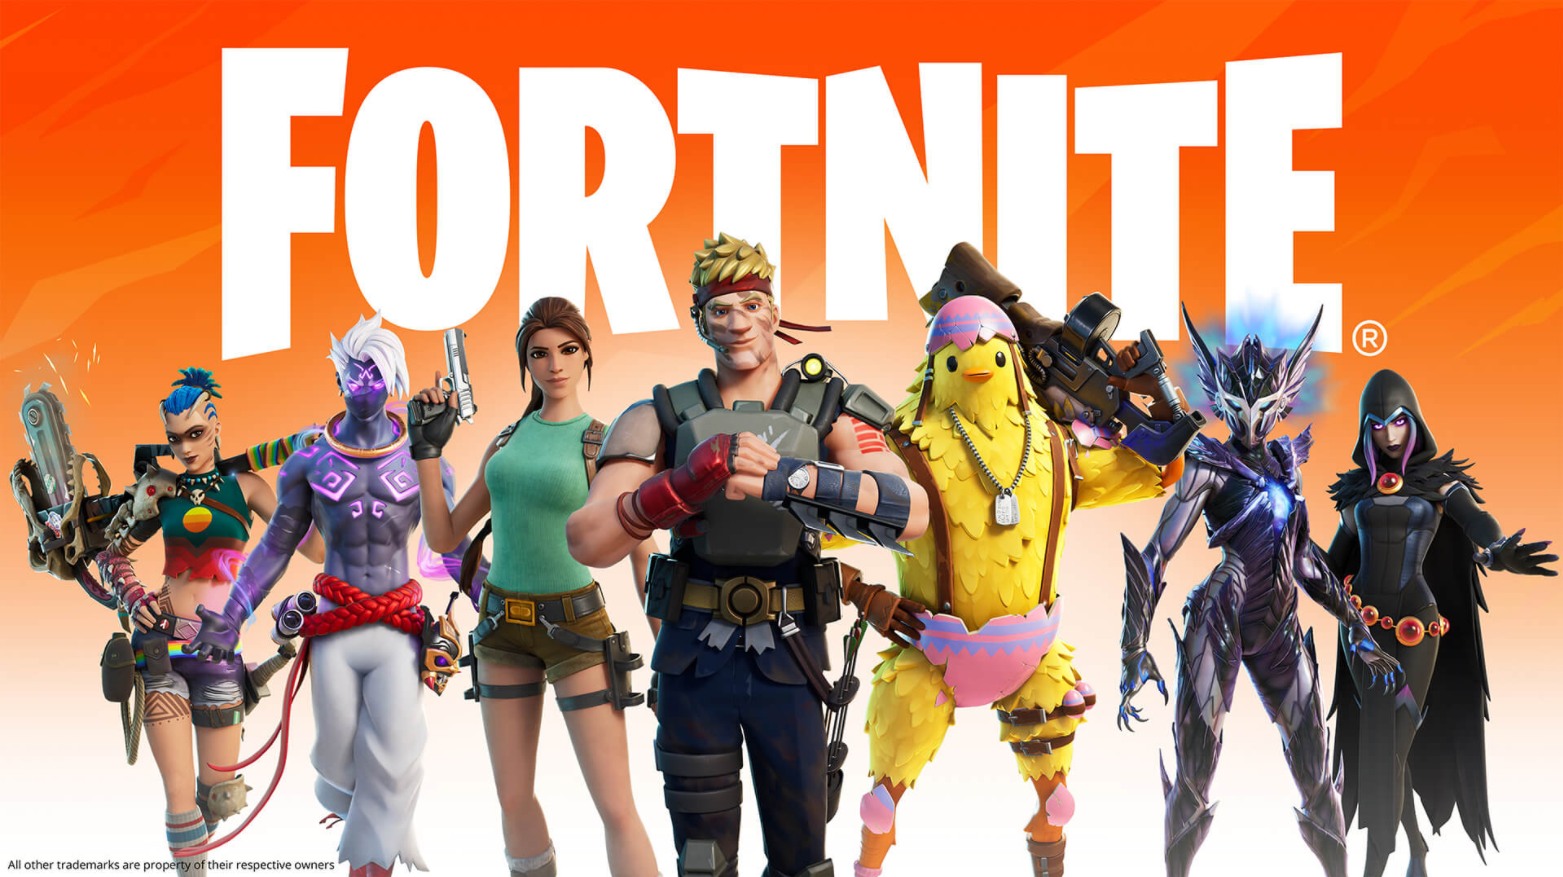 What Kind Of Audio Does Fortnite Support How To Enable Voice Chat In Fortnite